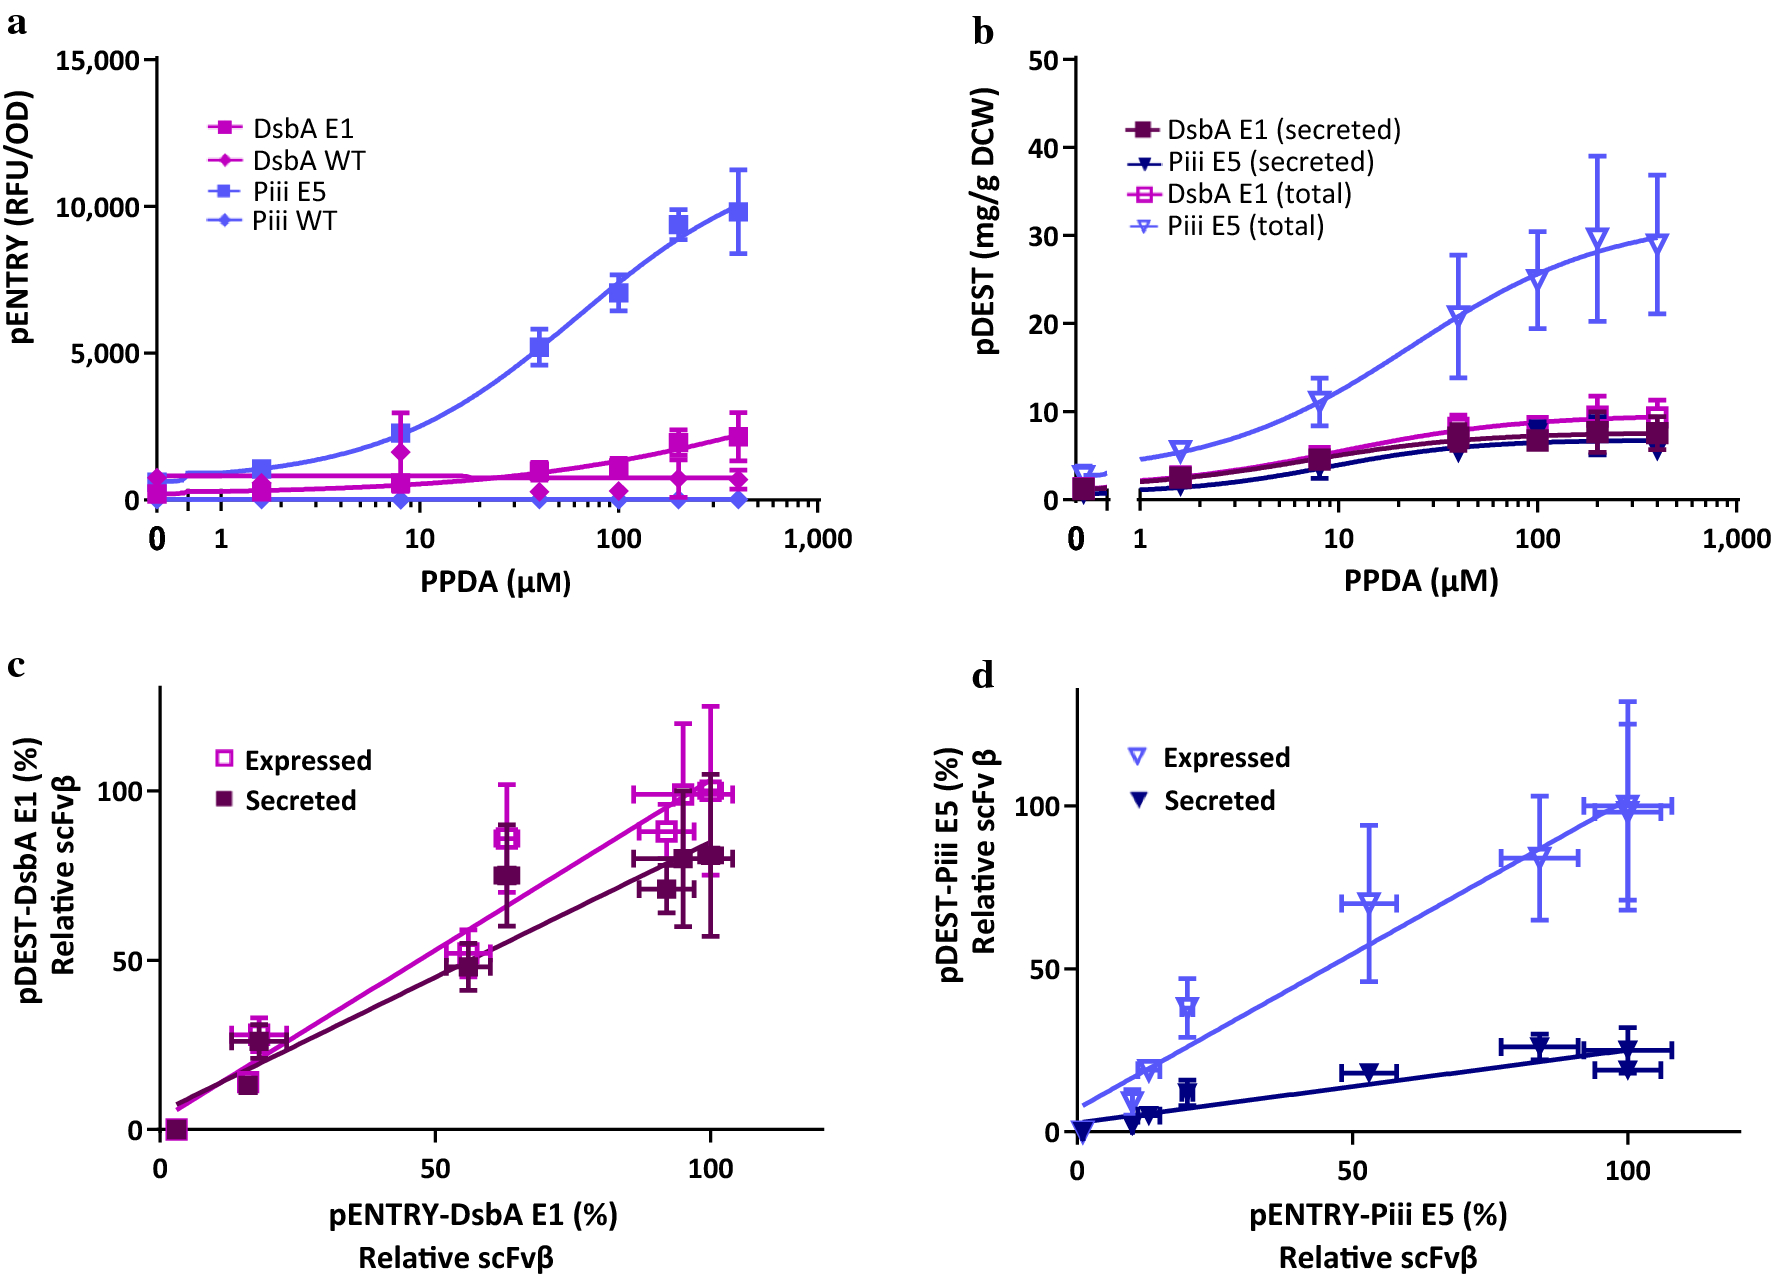 Tuning re binant protein expression to match secretion capacity